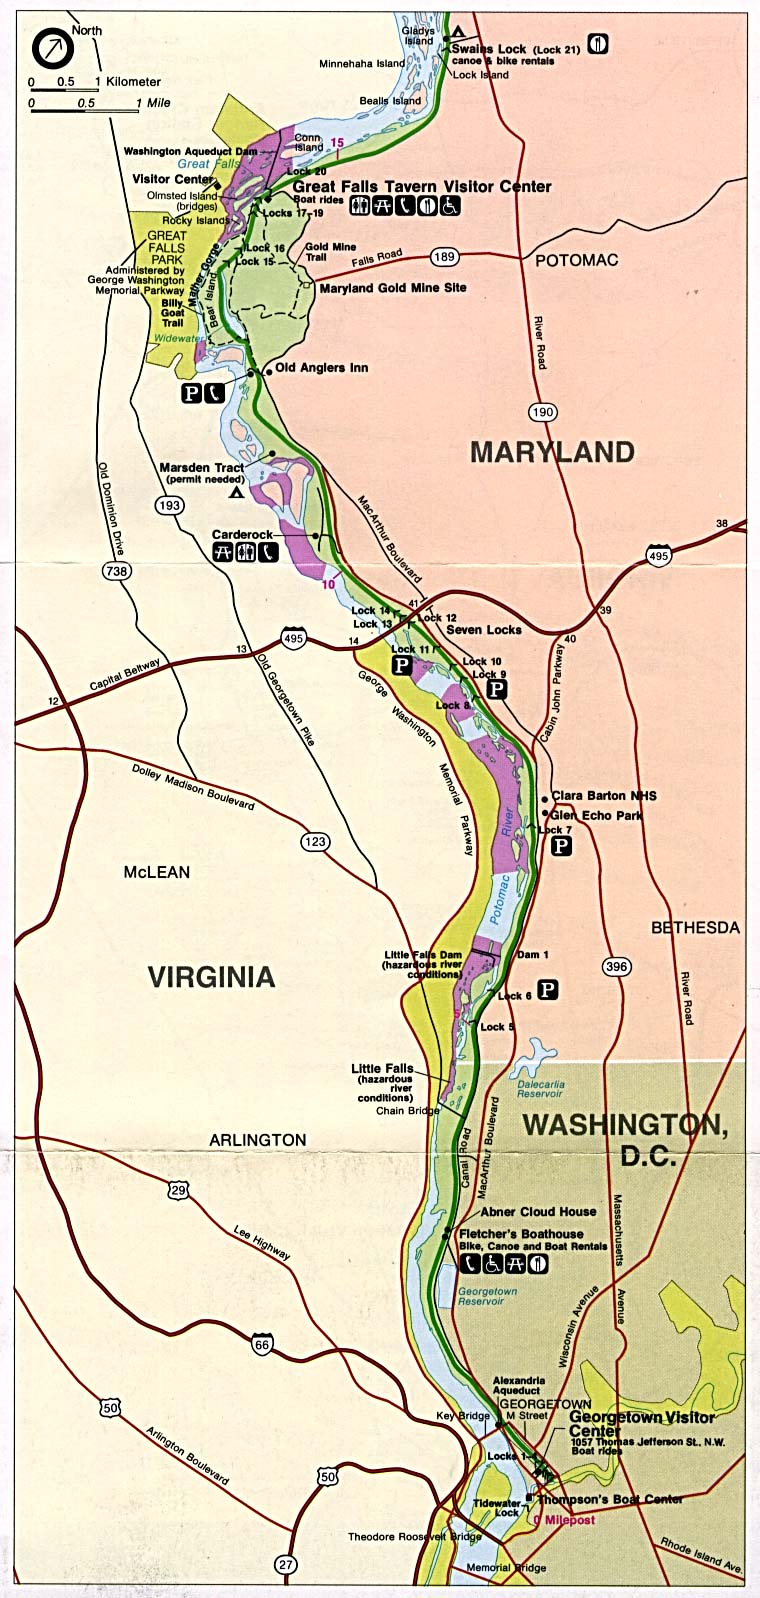 Maps of United States National Parks, Monuments and Historic Sites Chesapeake and Ohio Canal National Historic Park [Washington, DC / Maryland / West Virginia] (Area Map) 1996 (273K)